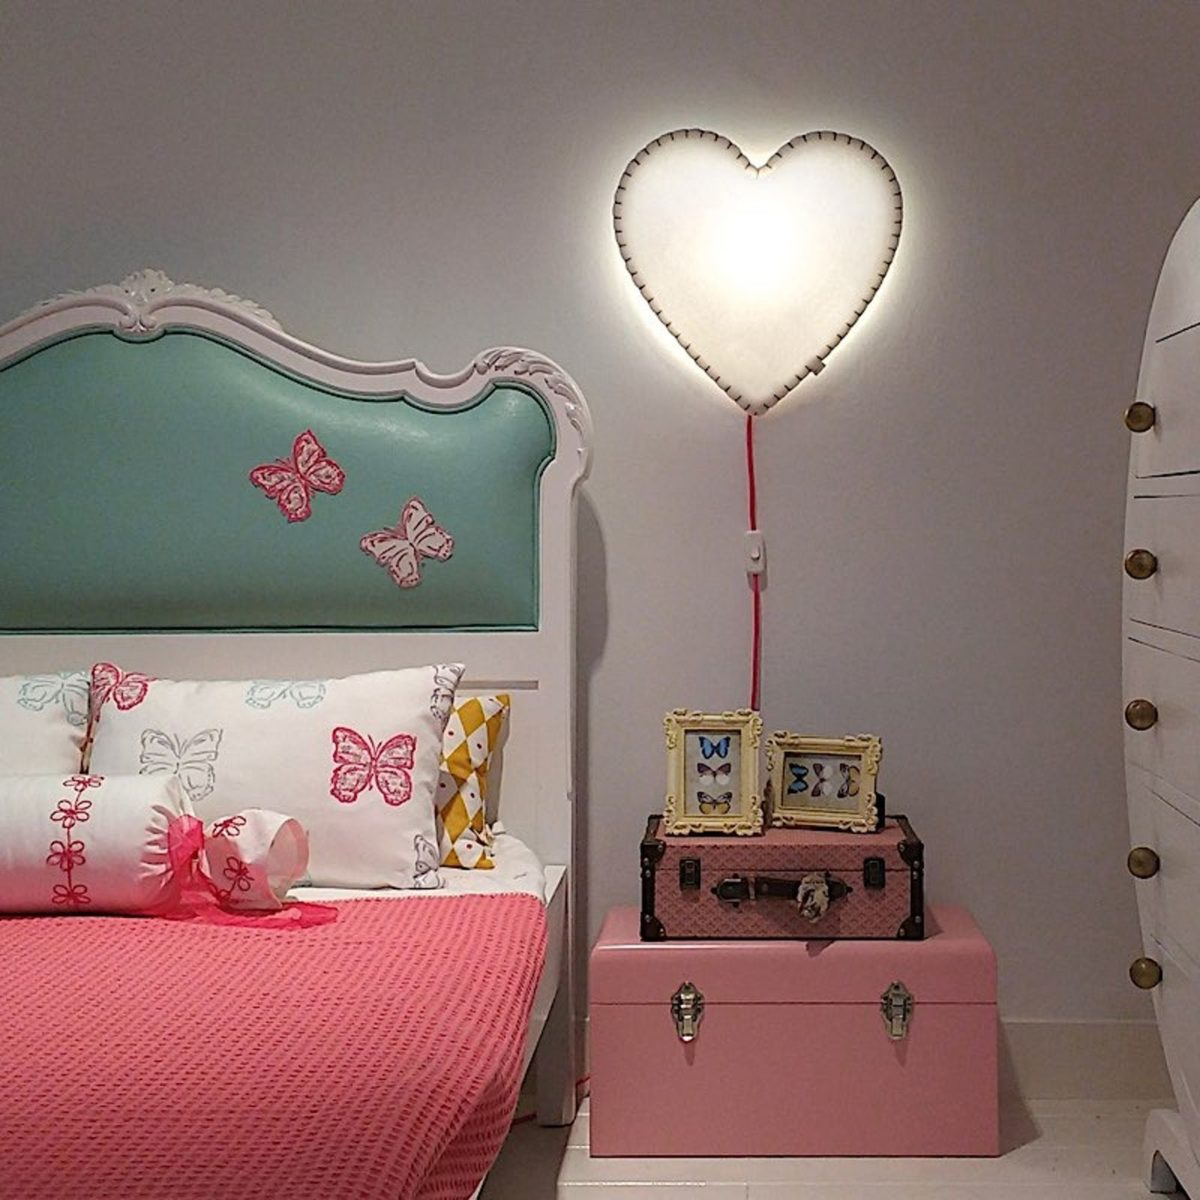 17nedgisapplique-murale-soft-light-blanc-rose-led-l46cm-h48cm-buokids-1200x1200.jpg